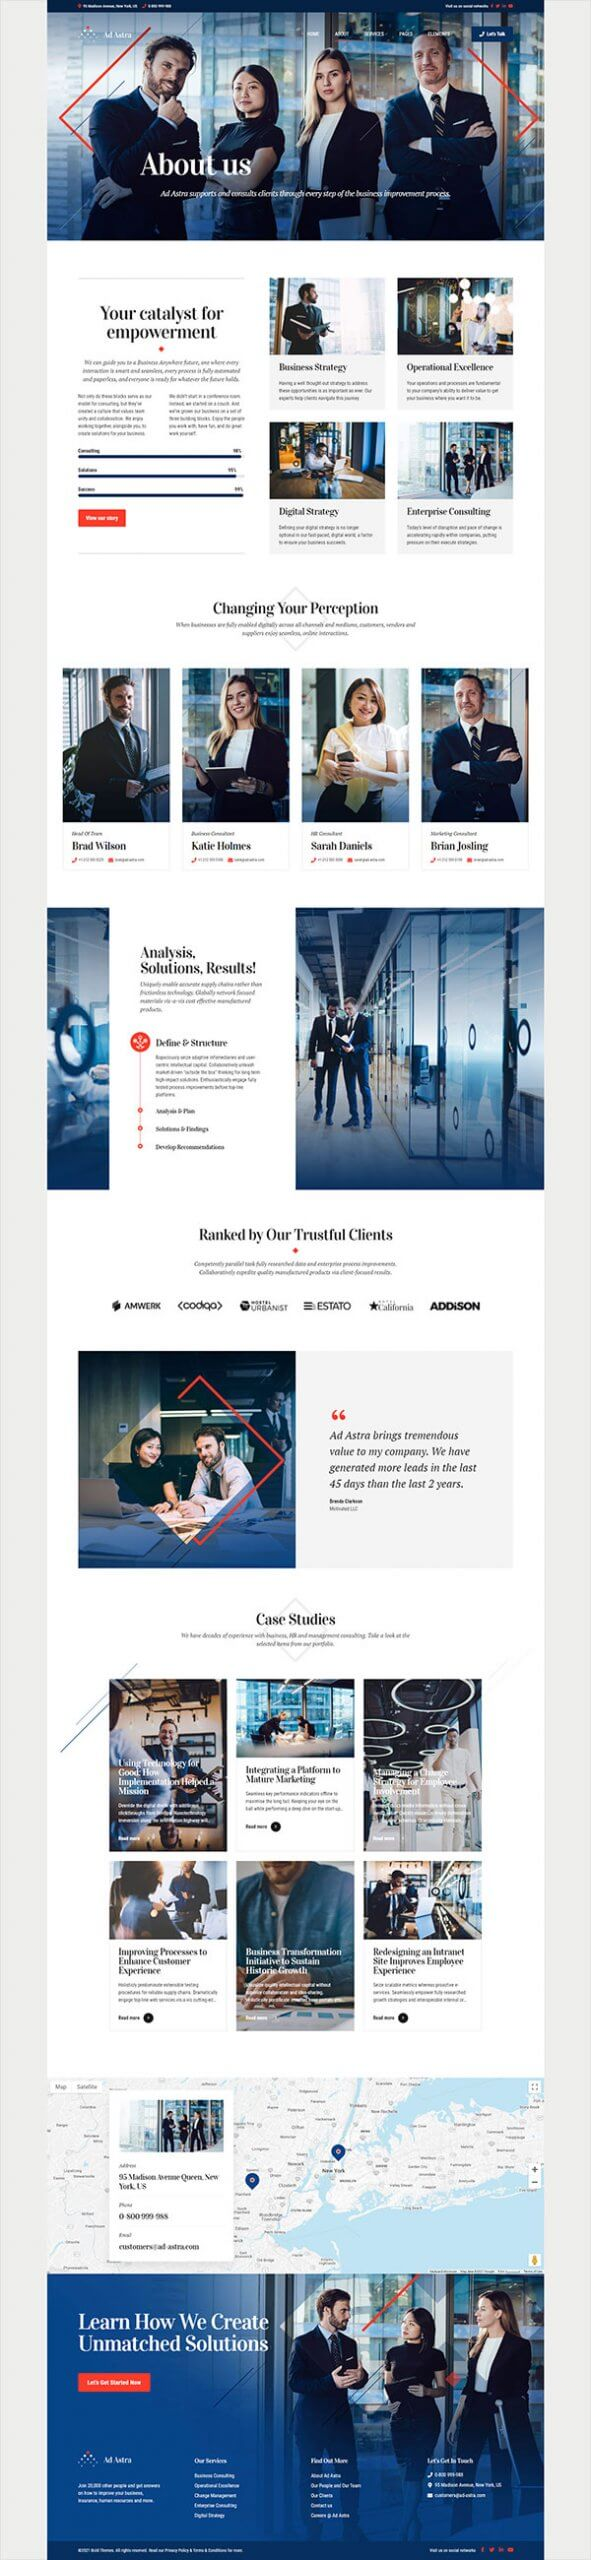 http://ad-astra.bold-themes.com/wp-content/uploads/2021/07/inner-01-scaled-1.jpg